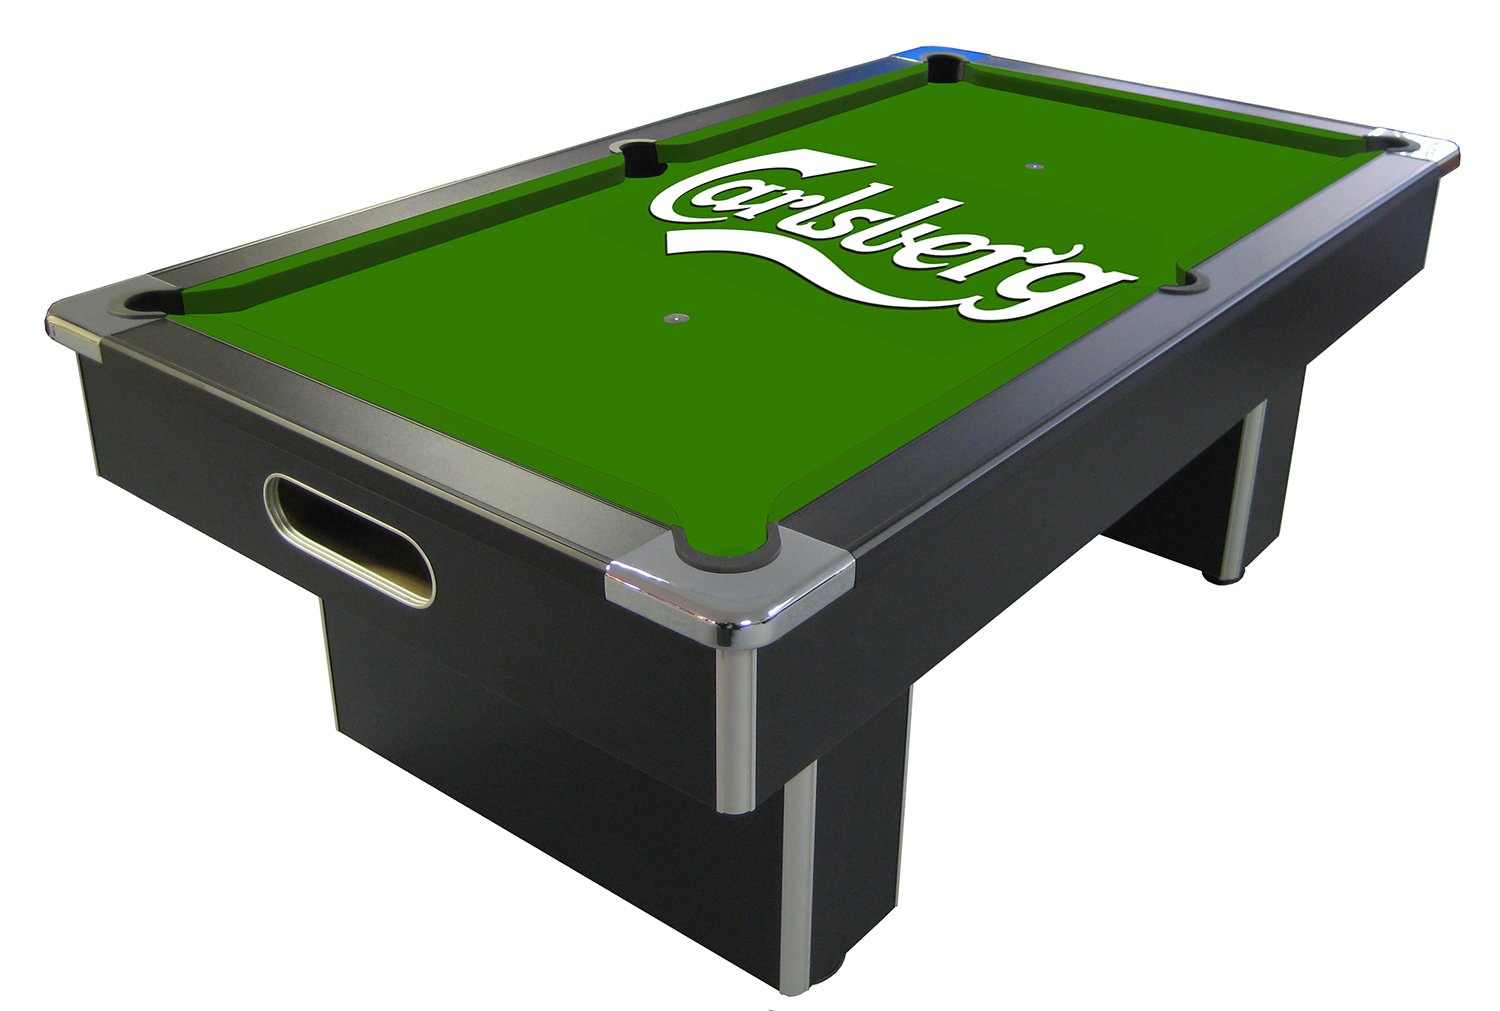 Carlsberg Slate Bed Pool Table - 6 ft, 7 ft : Liberty Games